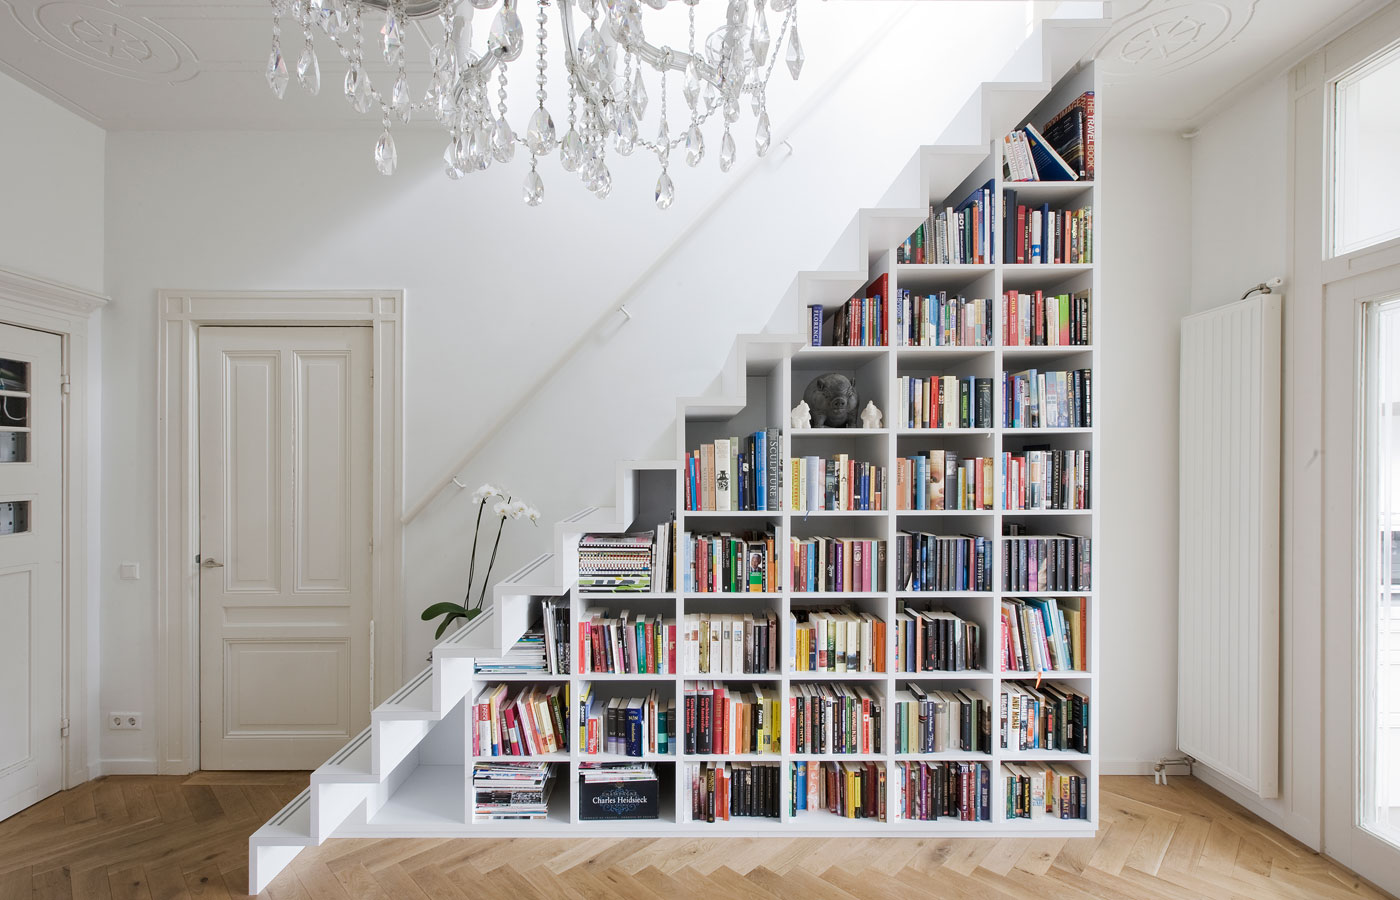 & 9 Creative Book Storage Hacks For Small Apartments